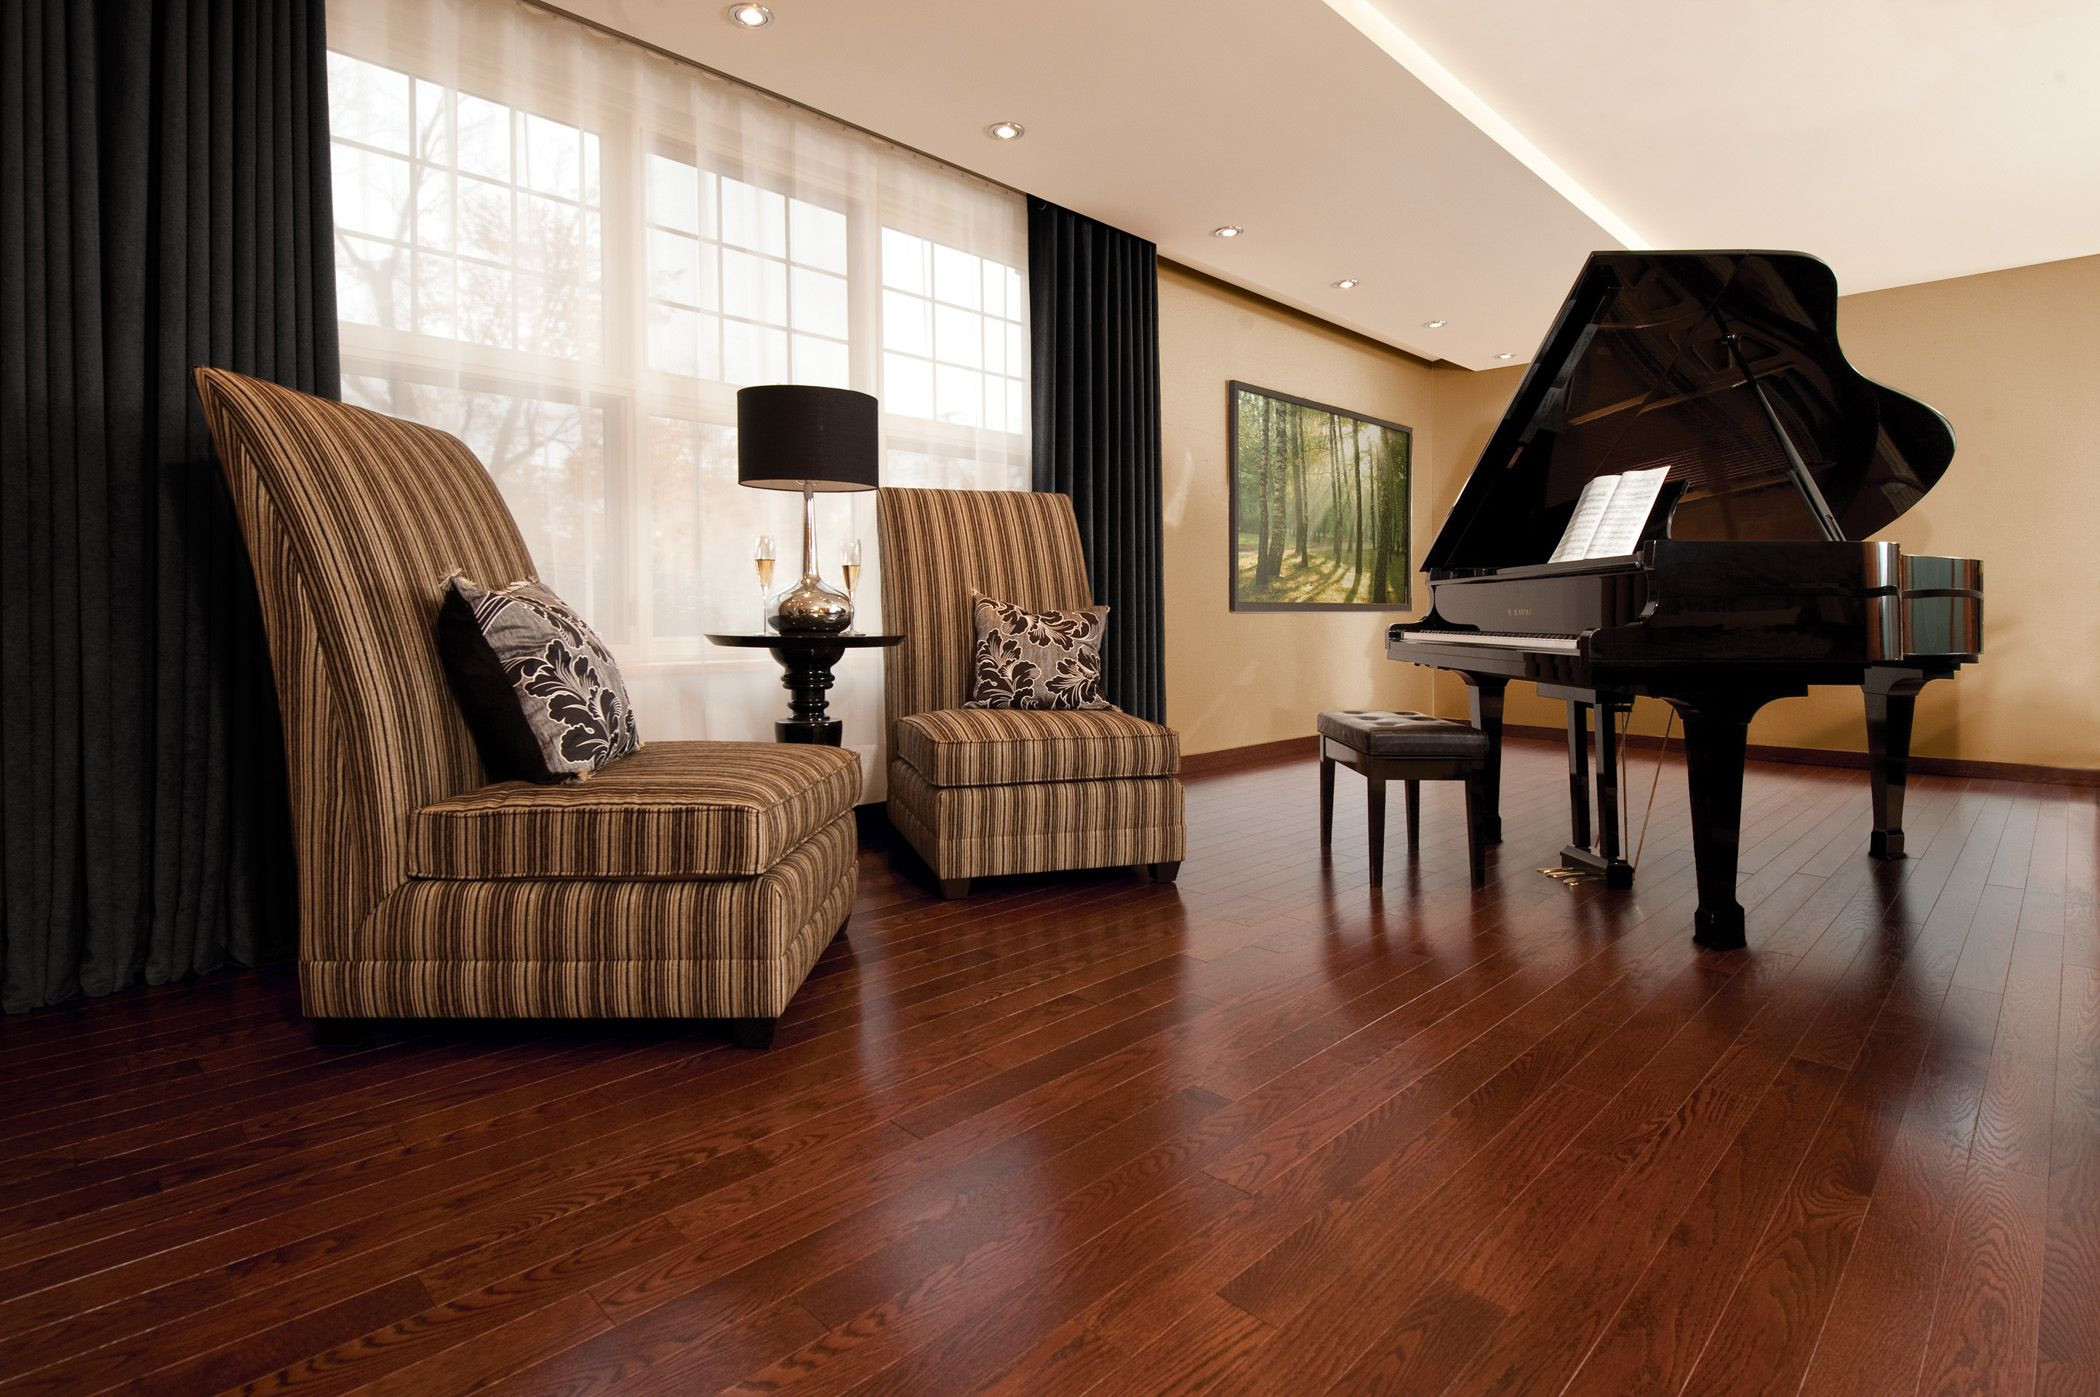 hardwood flooring vaughan ontario of subha muthukrishnan subham6 on pinterest for c21f7bbb747560b8cf0c385b5969d923